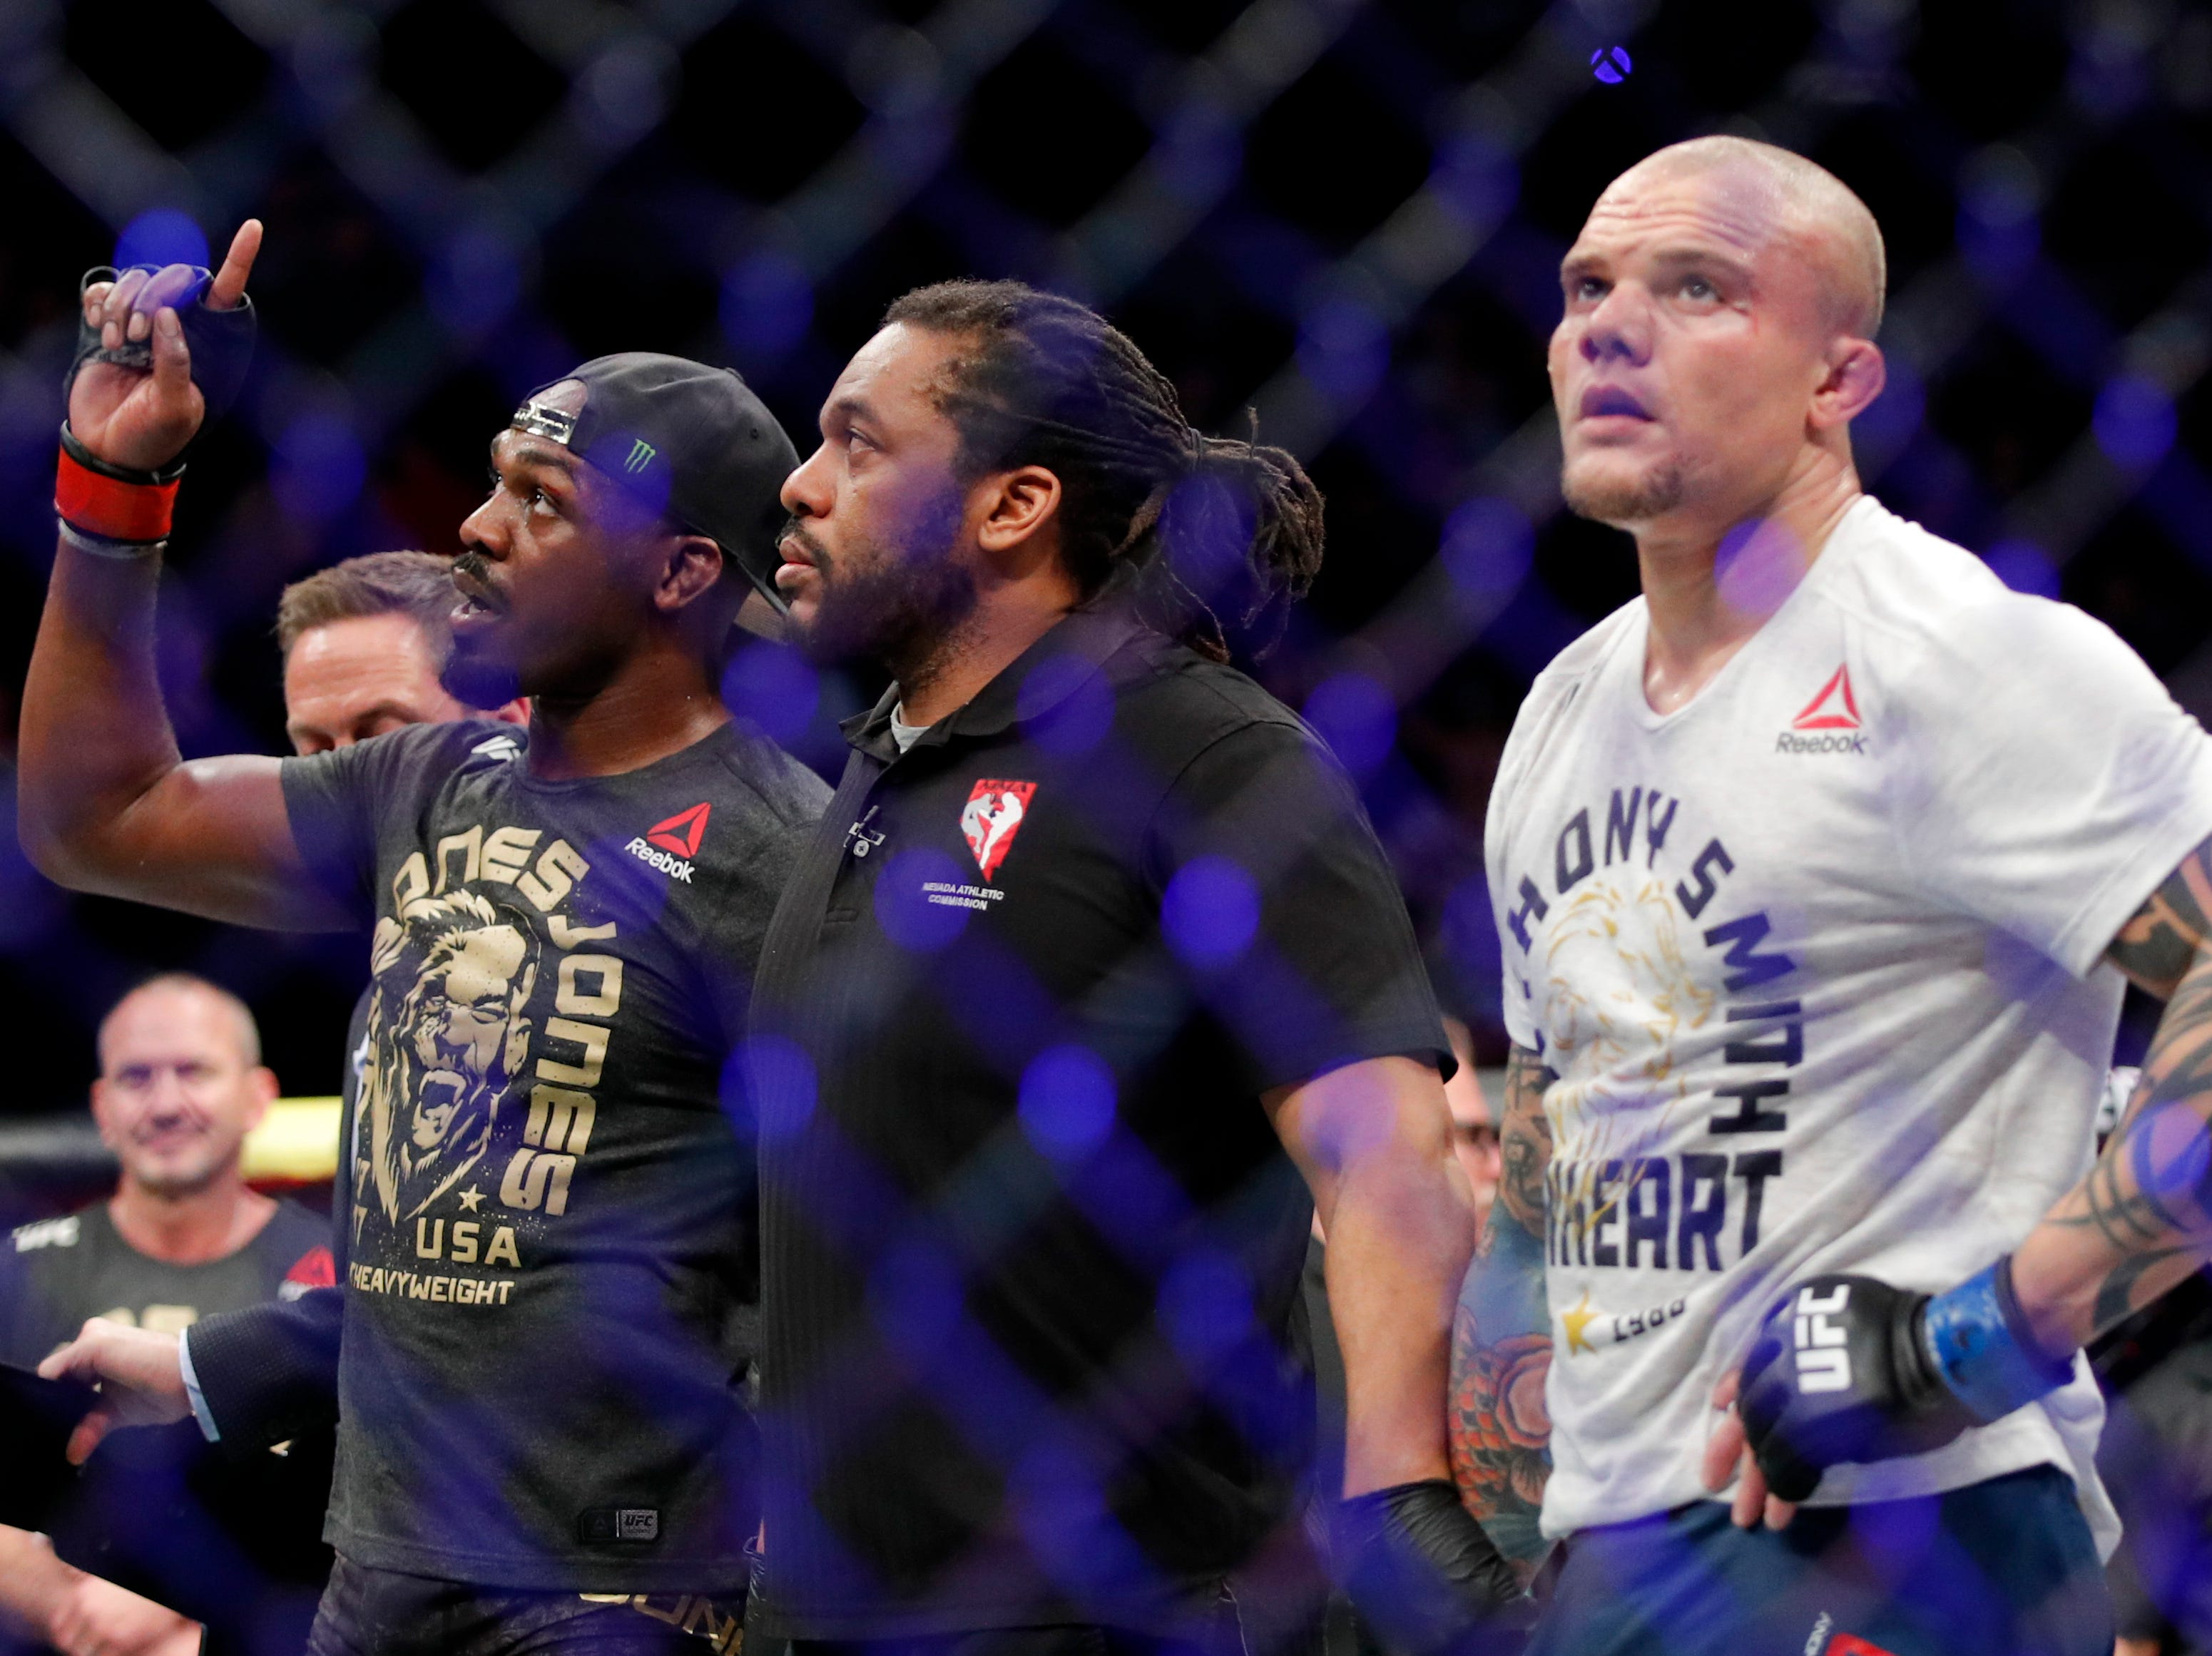 Jon Jones, left, celebrates after his win against Anthony Smith in a light heavyweight mixed martial arts title bout at UFC 235, Saturday, March 2, 2019, in Las Vegas. (AP Photo/John Locher)